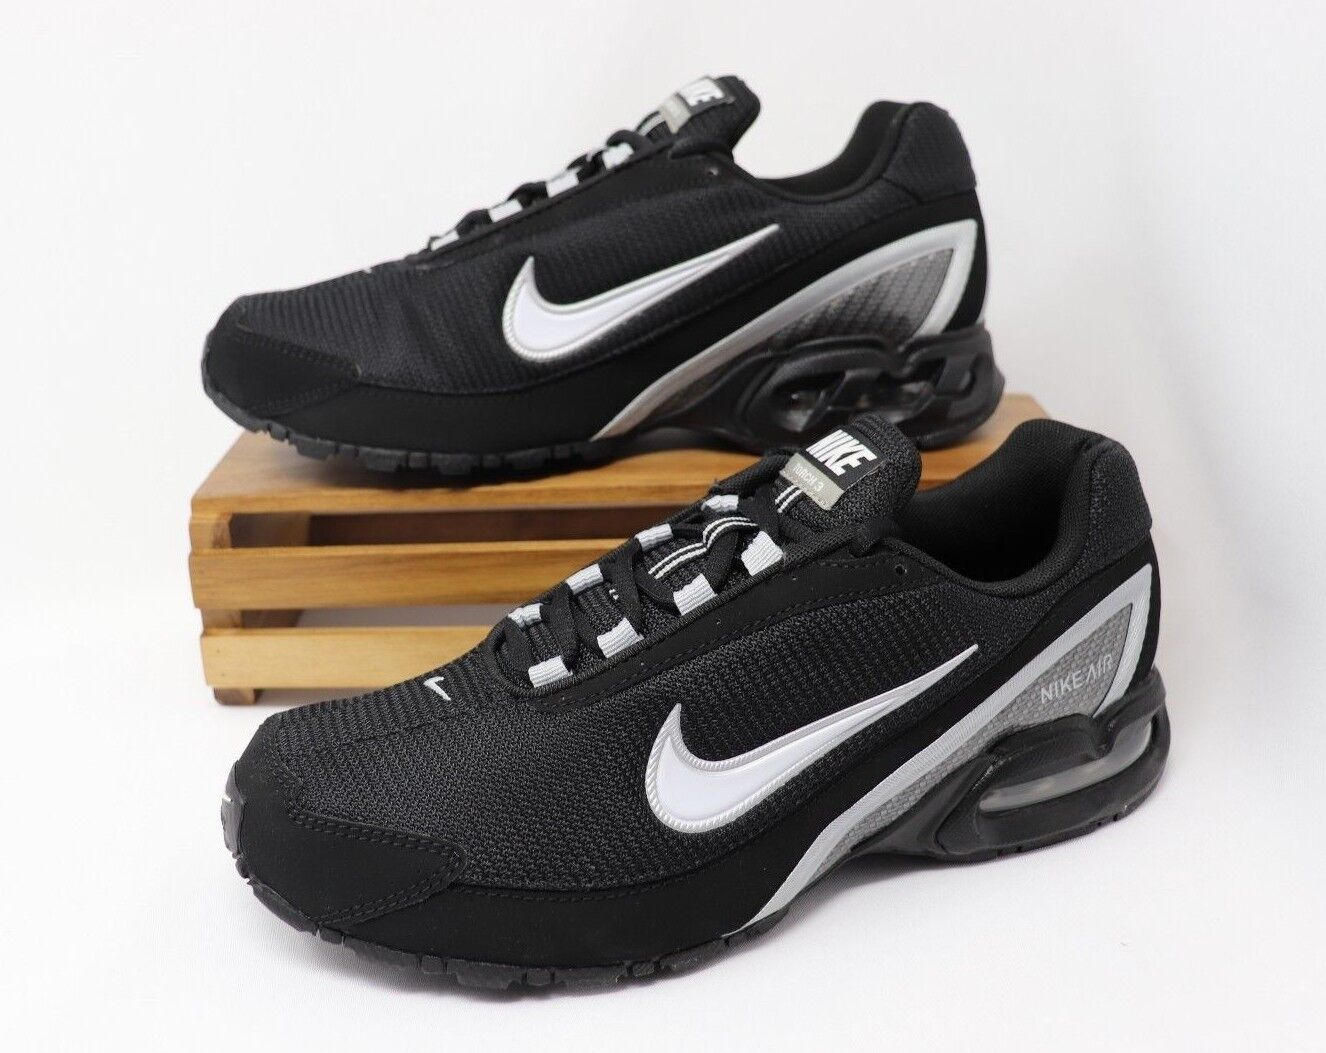 Nike Air Max Torch 3 Running Shoes Black White Silver 319116 011 Men's NWOB